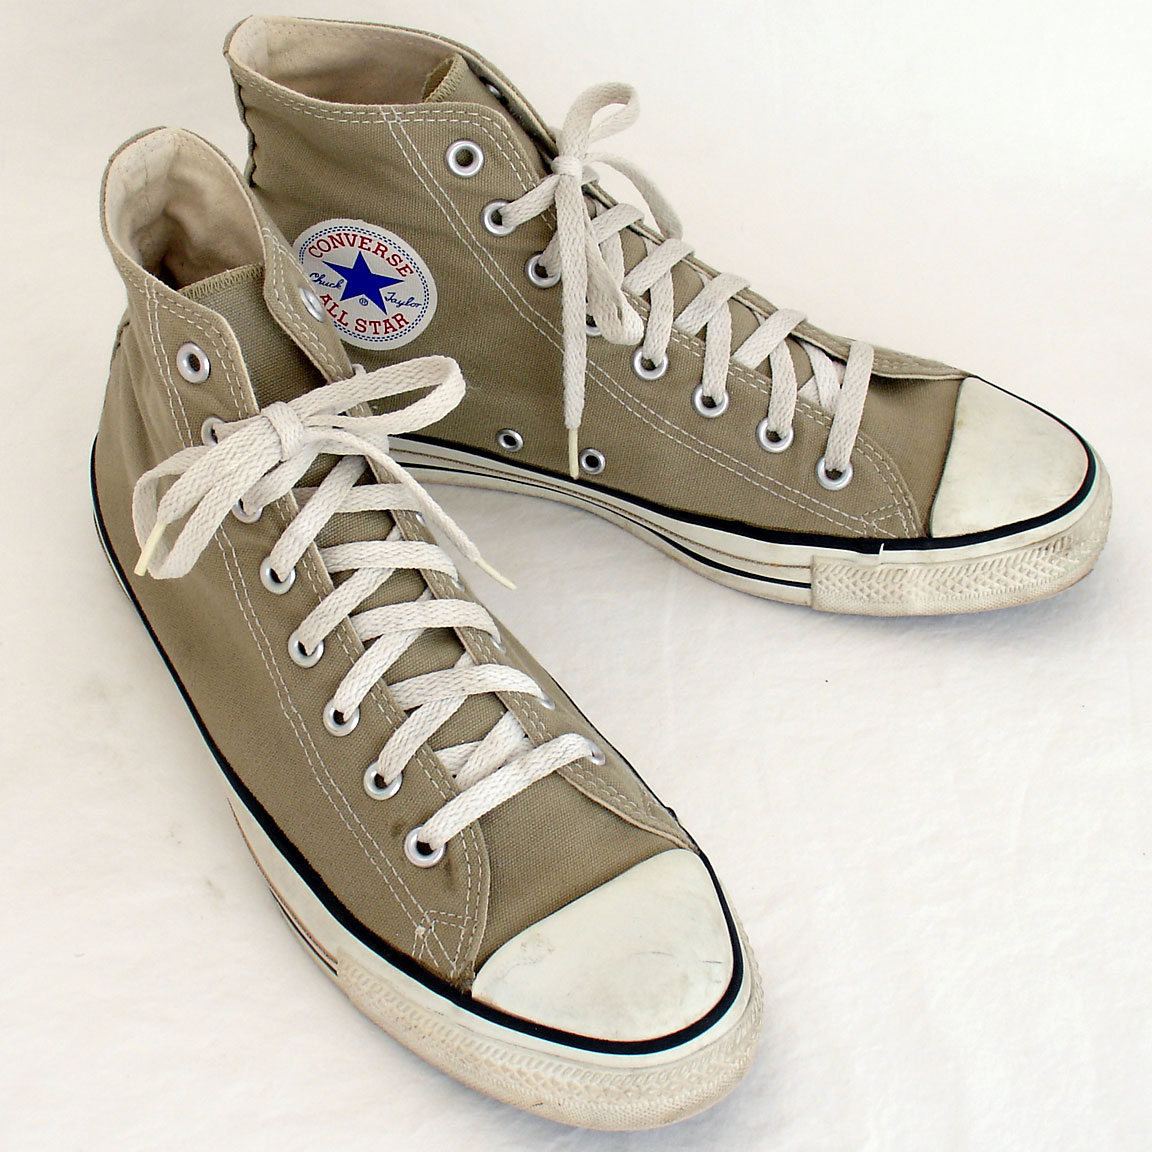 6d1d3caa849 Vintage American-made Converse All Star Chuck Taylor khaki shoes for sale  at http